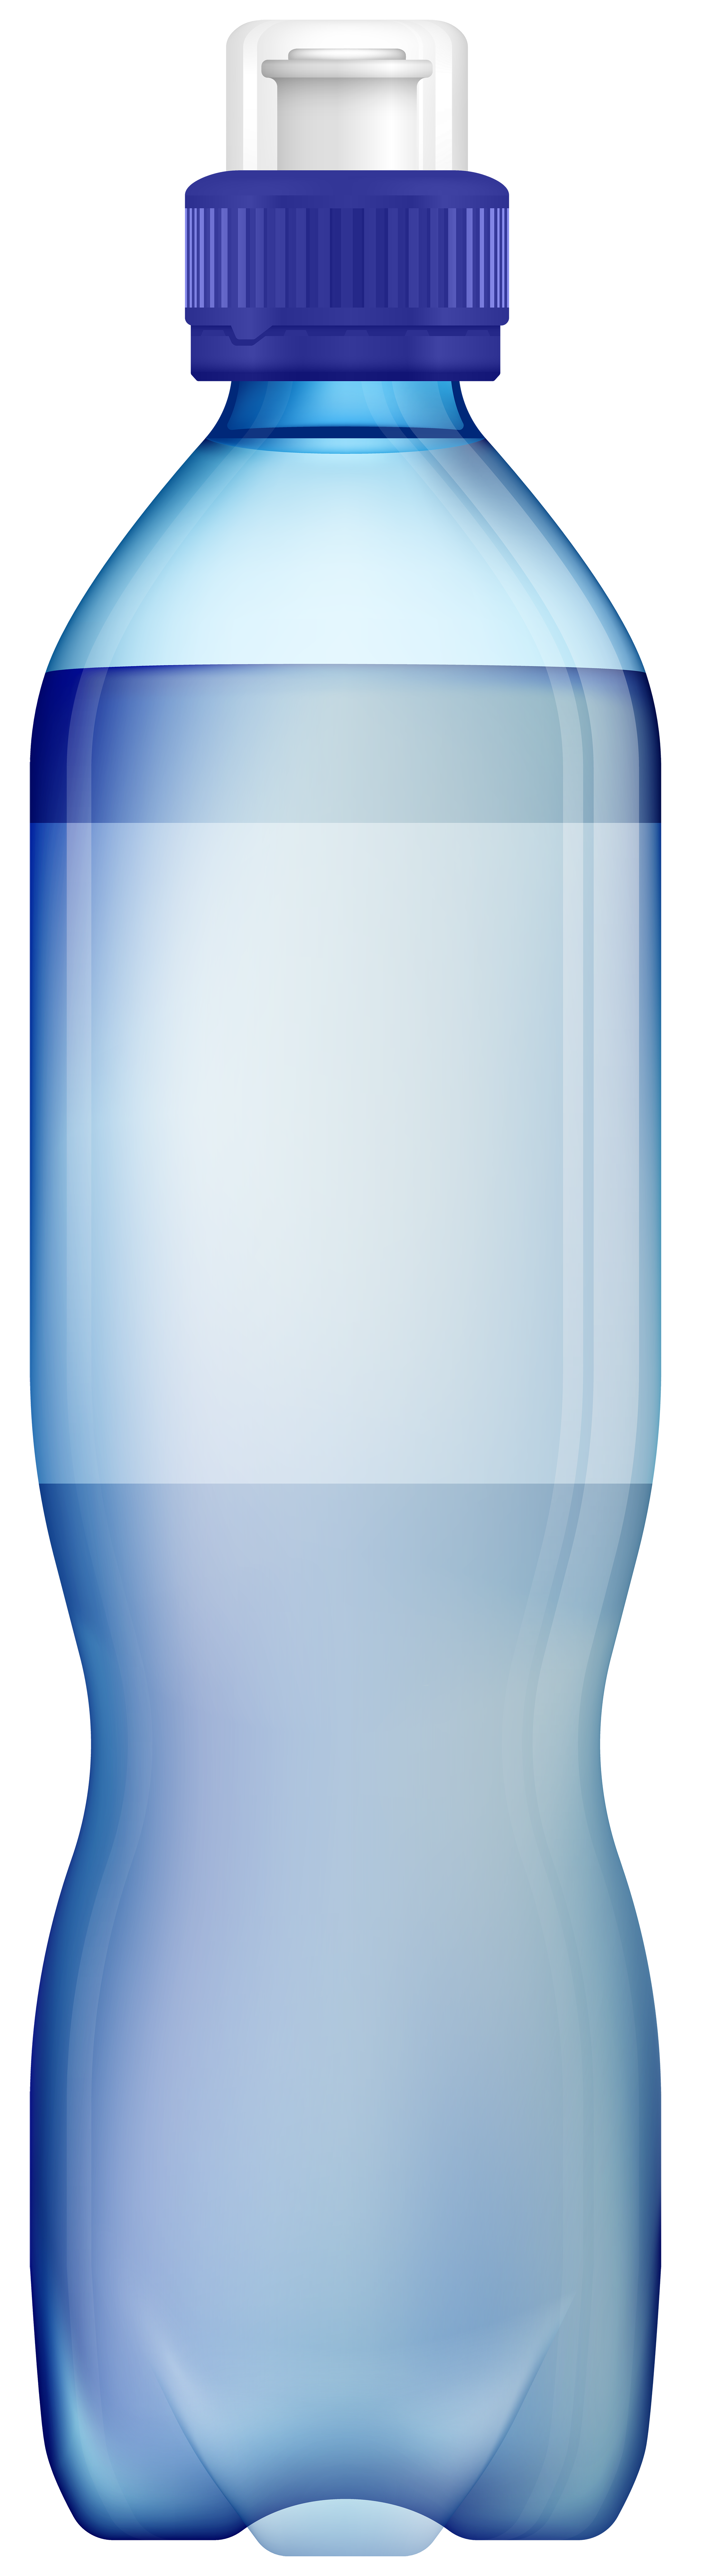 Mineral png clip art. Clipart water water bottle